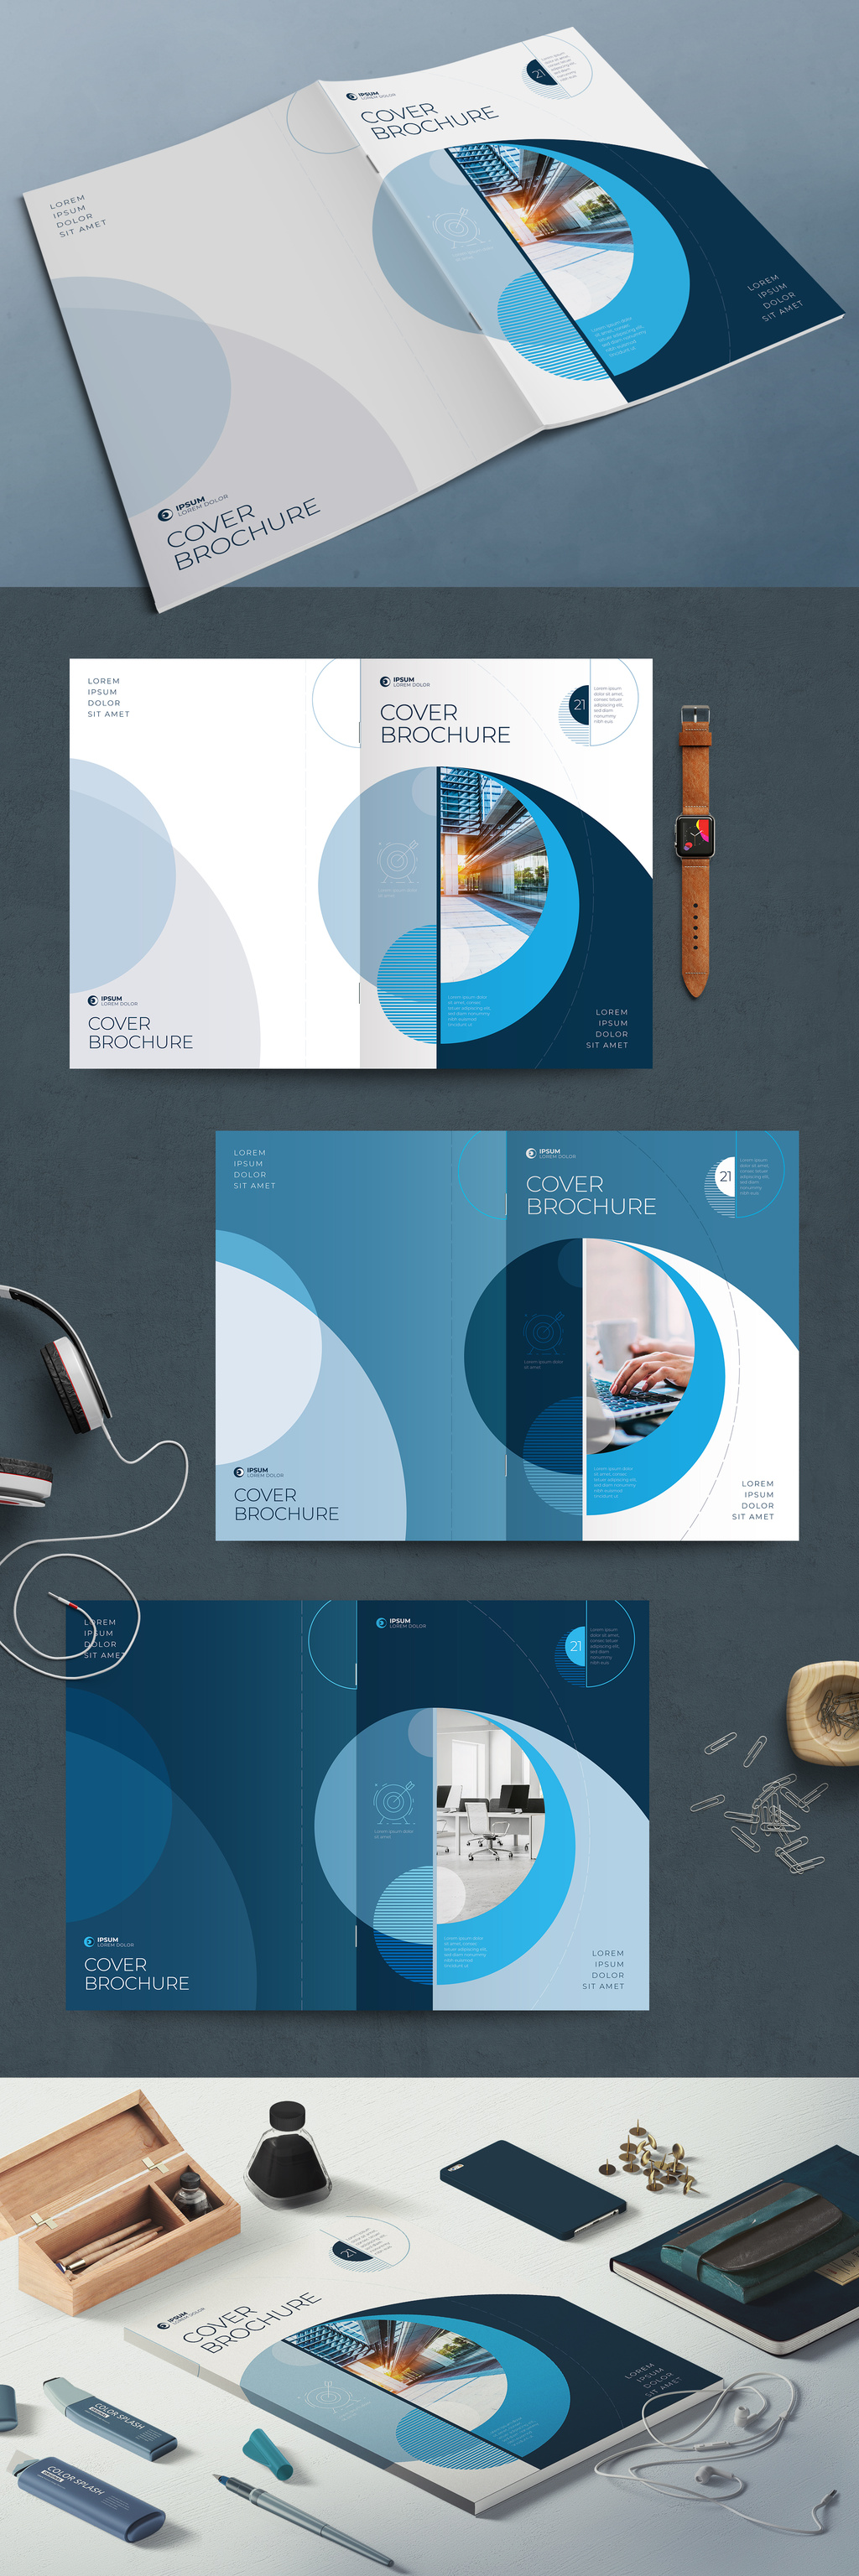 Business report cover layout with blue circle elements.